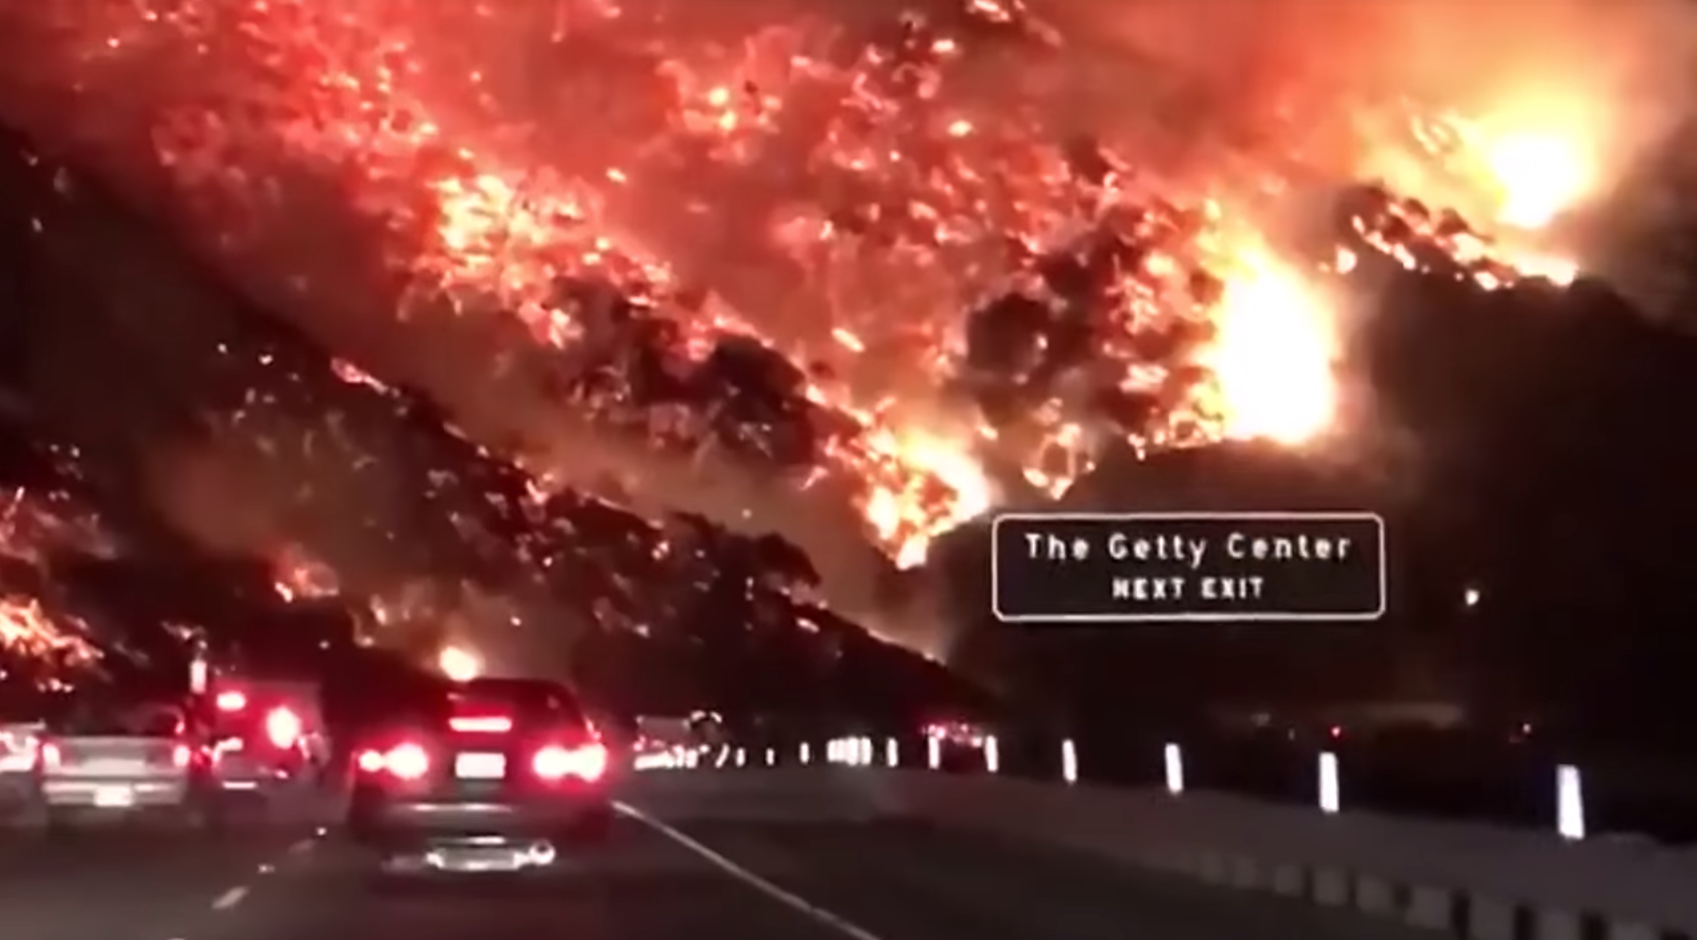 The Skirball Fire engulfs parts of Bel Air next to the 405 Highway on December 7, 2017